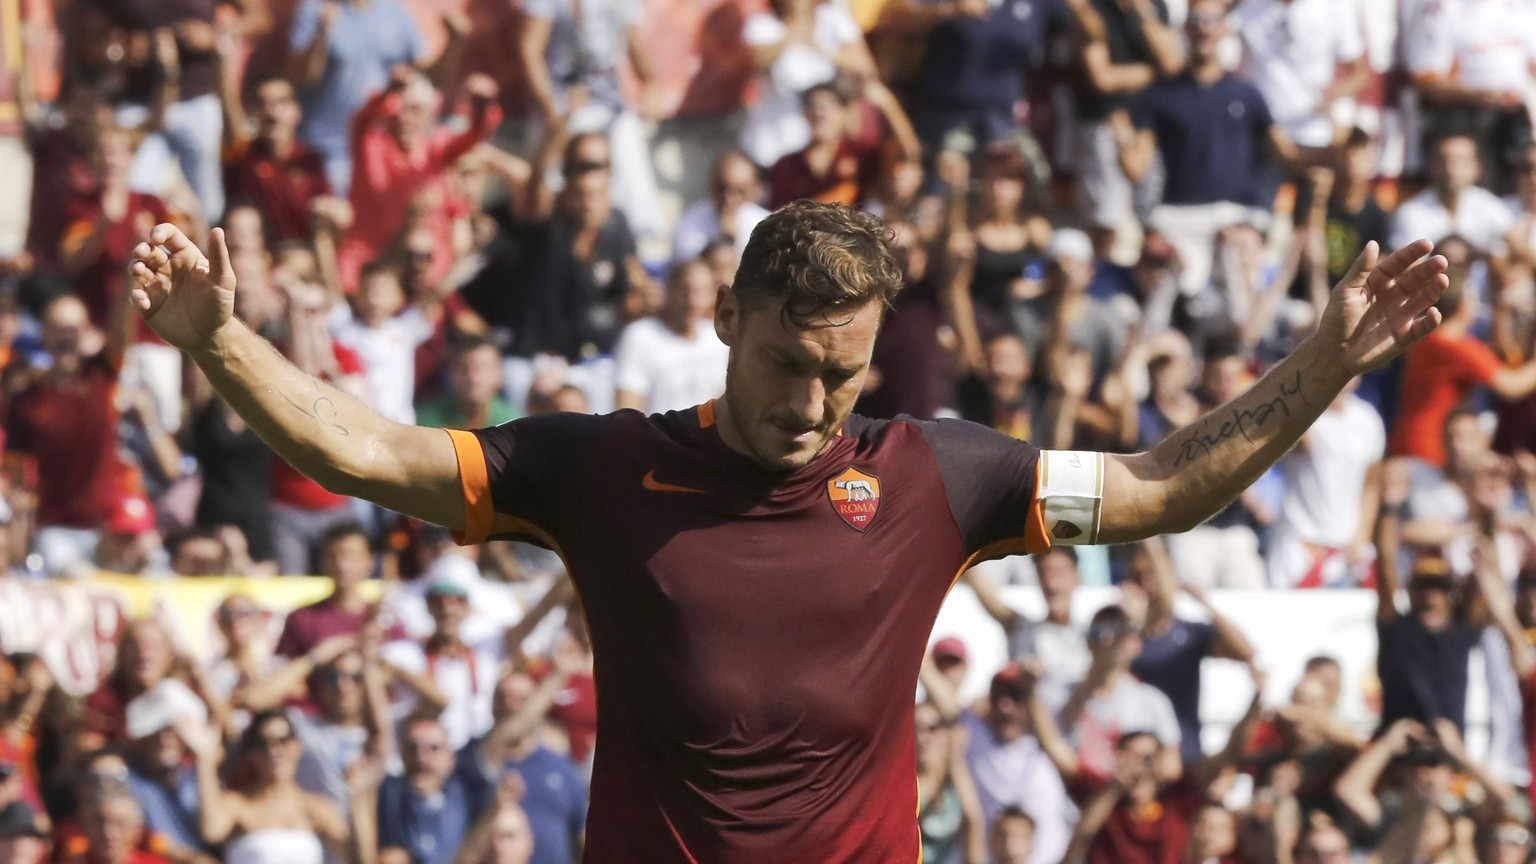 Romaís Francesco Totti celebrates after scoring during a Serie A soccer match between Roma and Sassuolo, at Rome's Olympic stadium, Sunday, Sept. 20, 2015. (AP Photo/Riccardo De Luca)